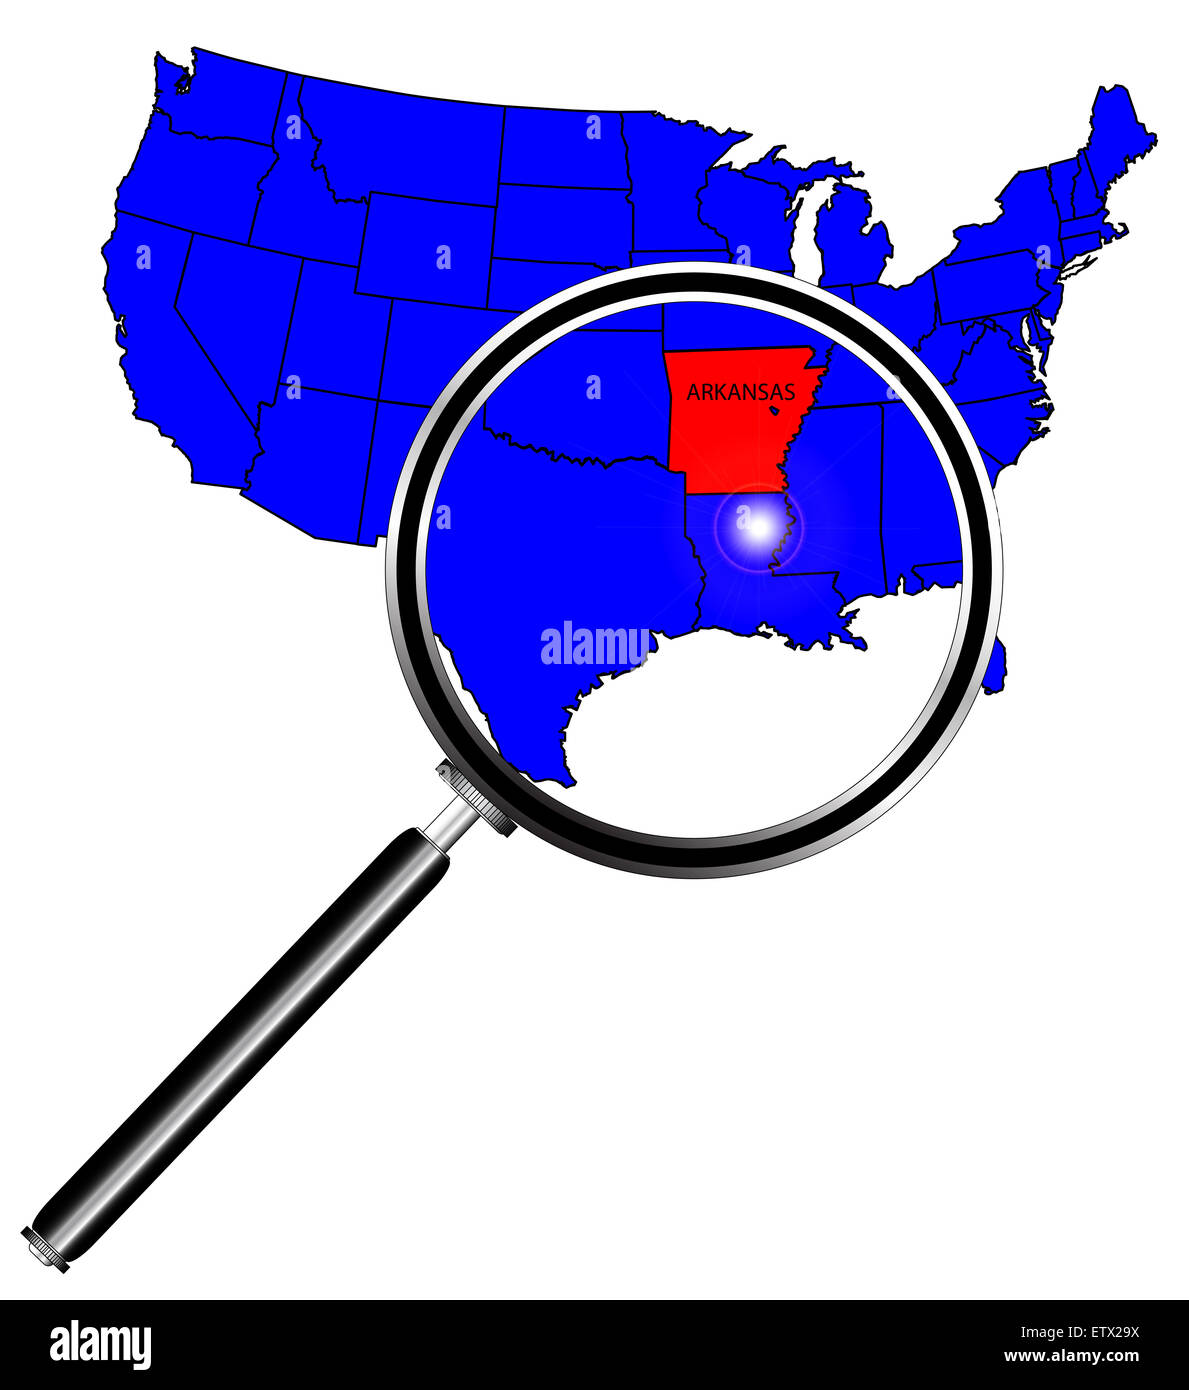 Arkansas state outline set into a map of The United States ...